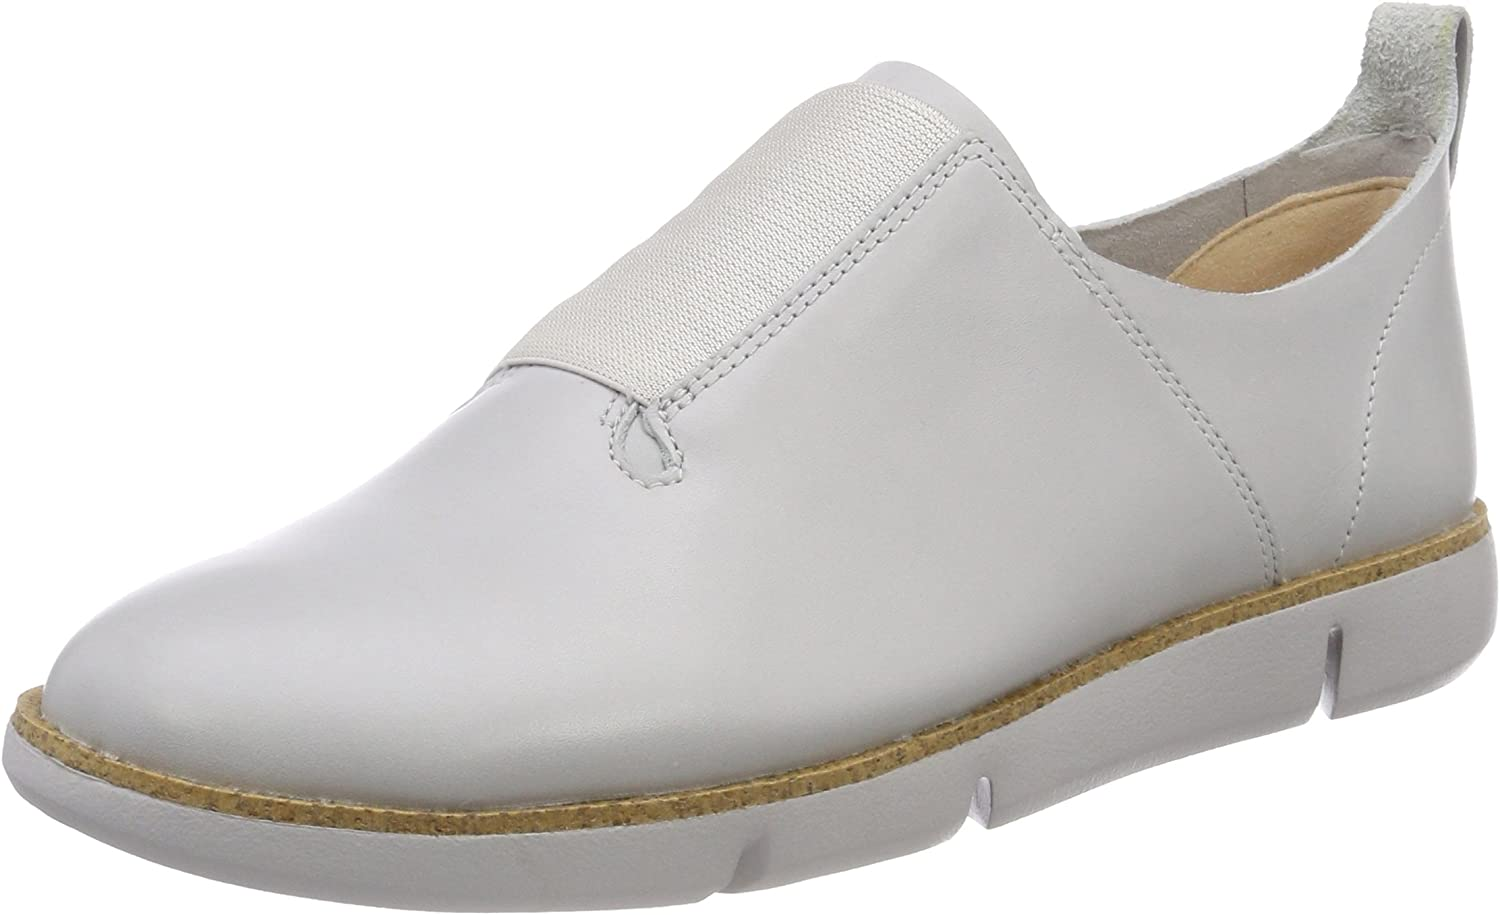 Clarks Tri Form - 261324654 - color White - Size  7.5